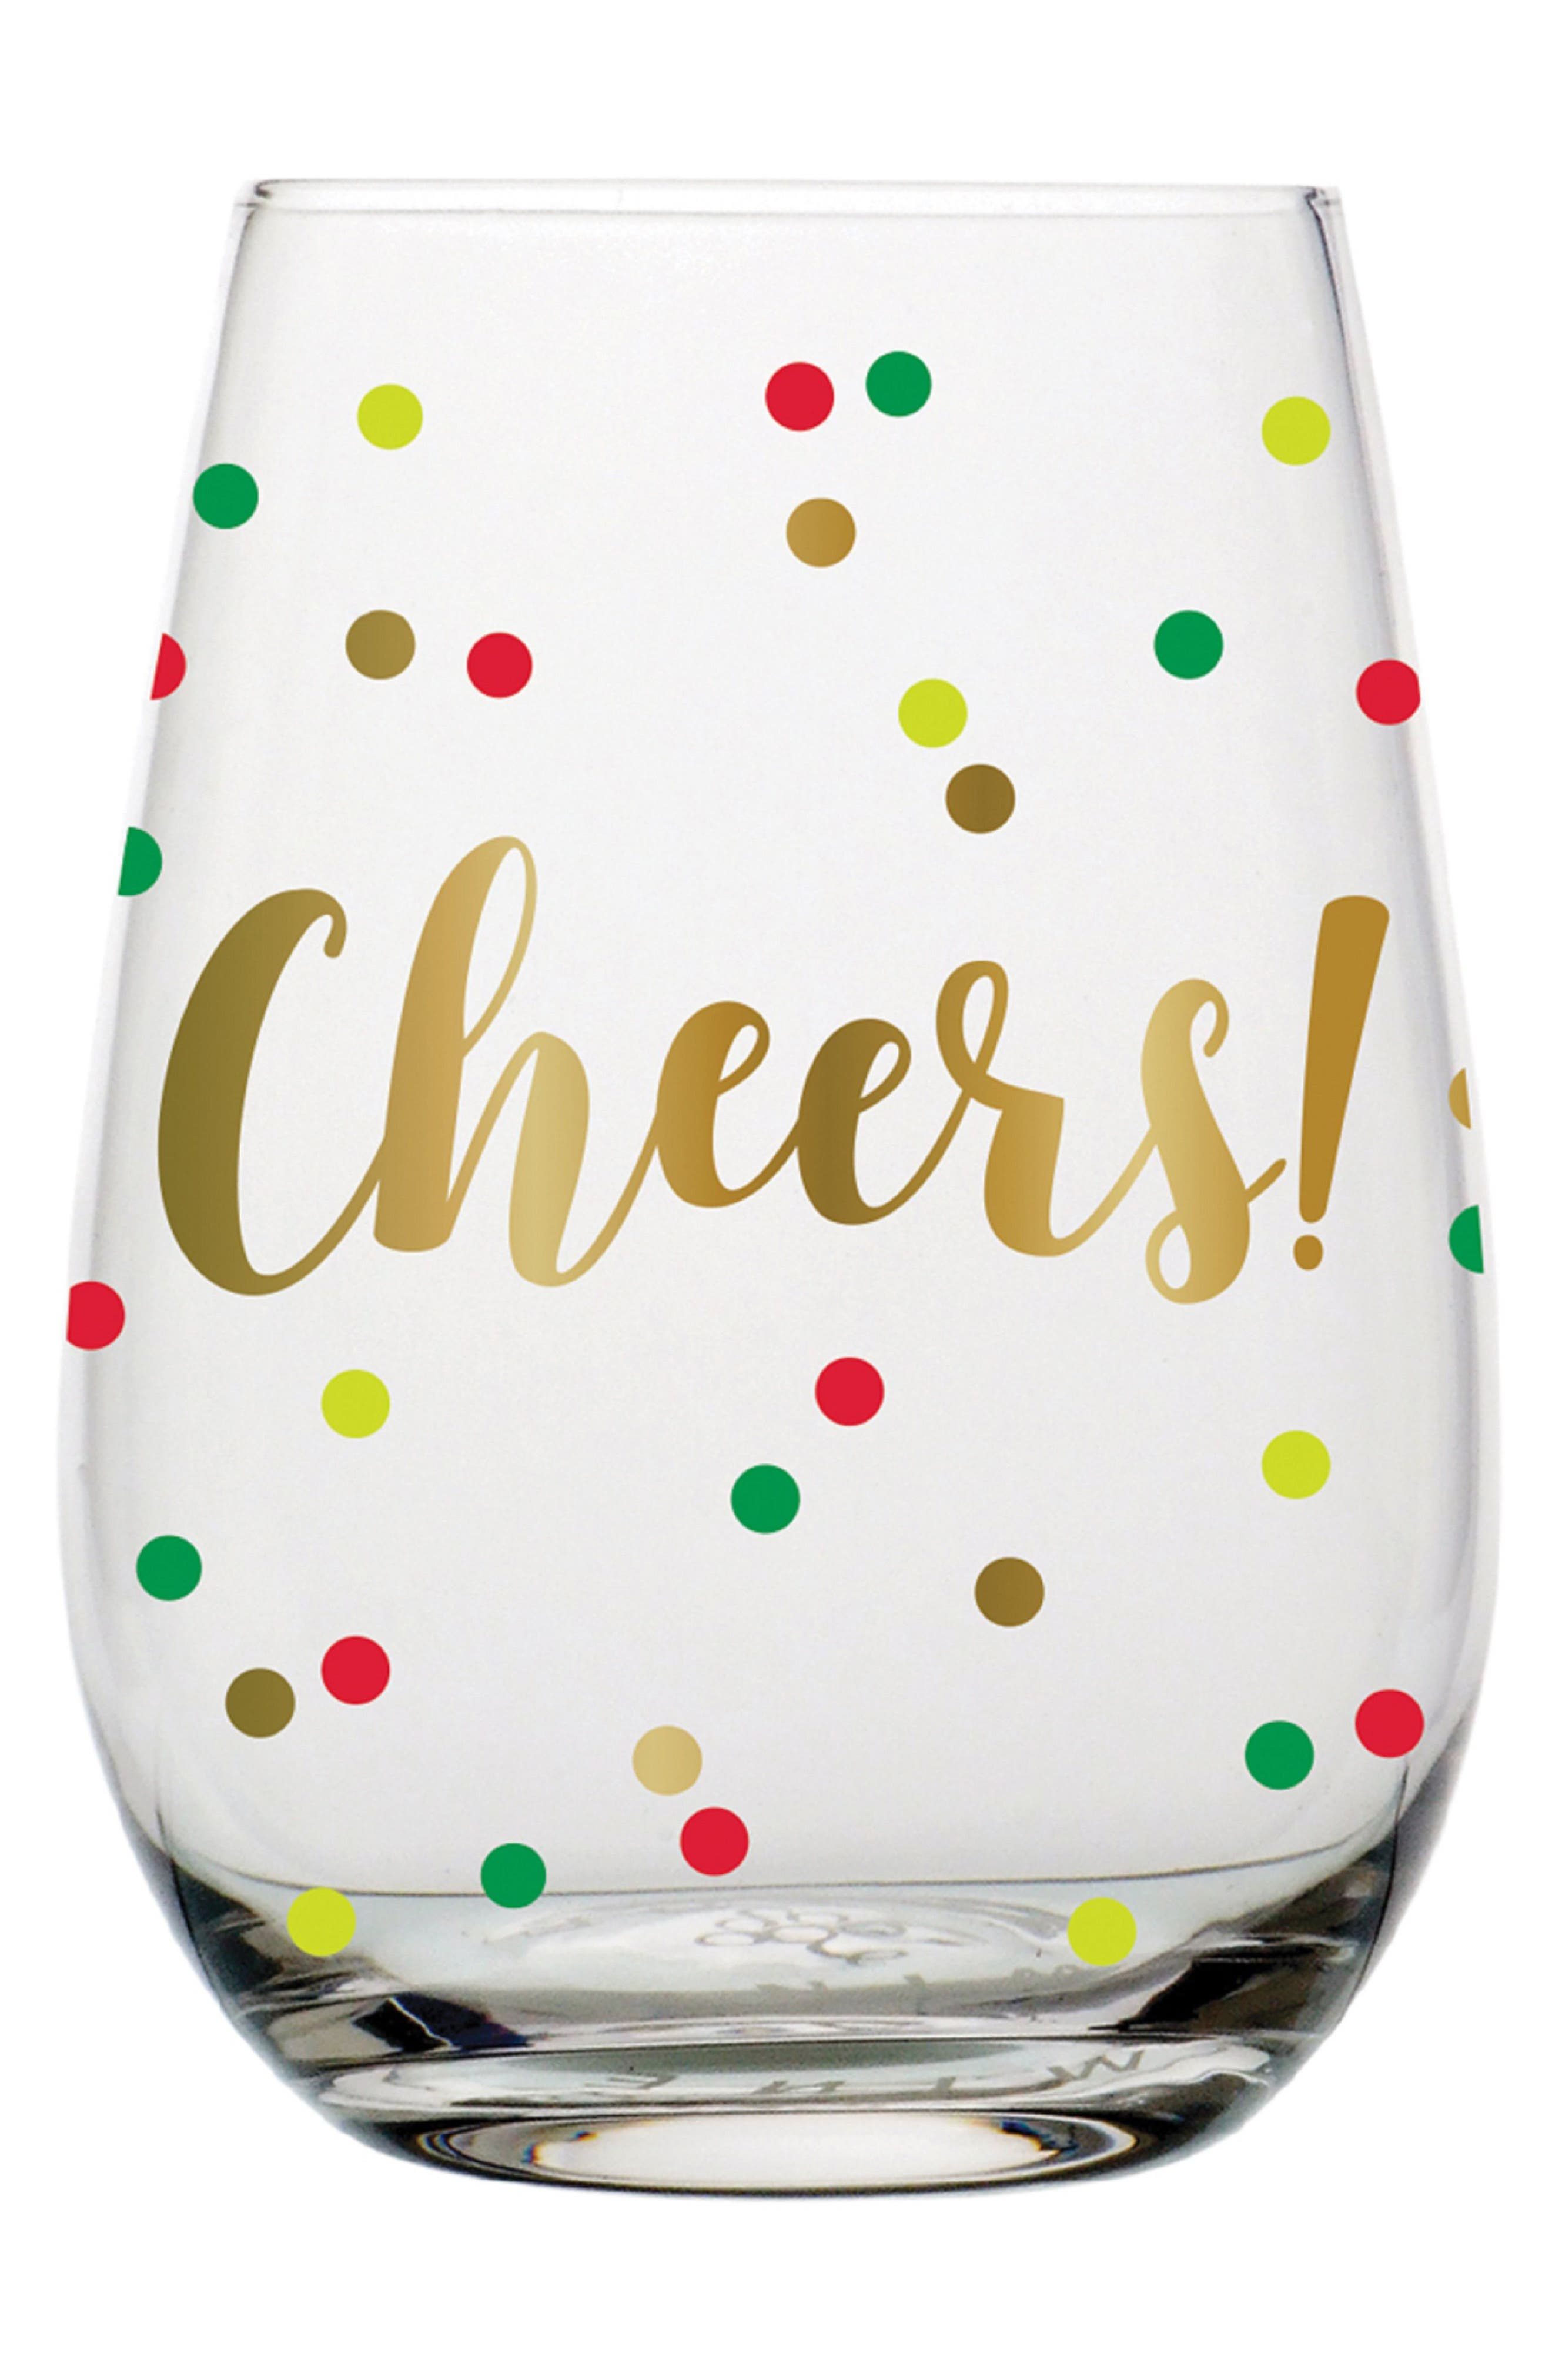 Alternate Image 1 Selected - Slant Collections Cheers Confetti Stemless Wine Glass